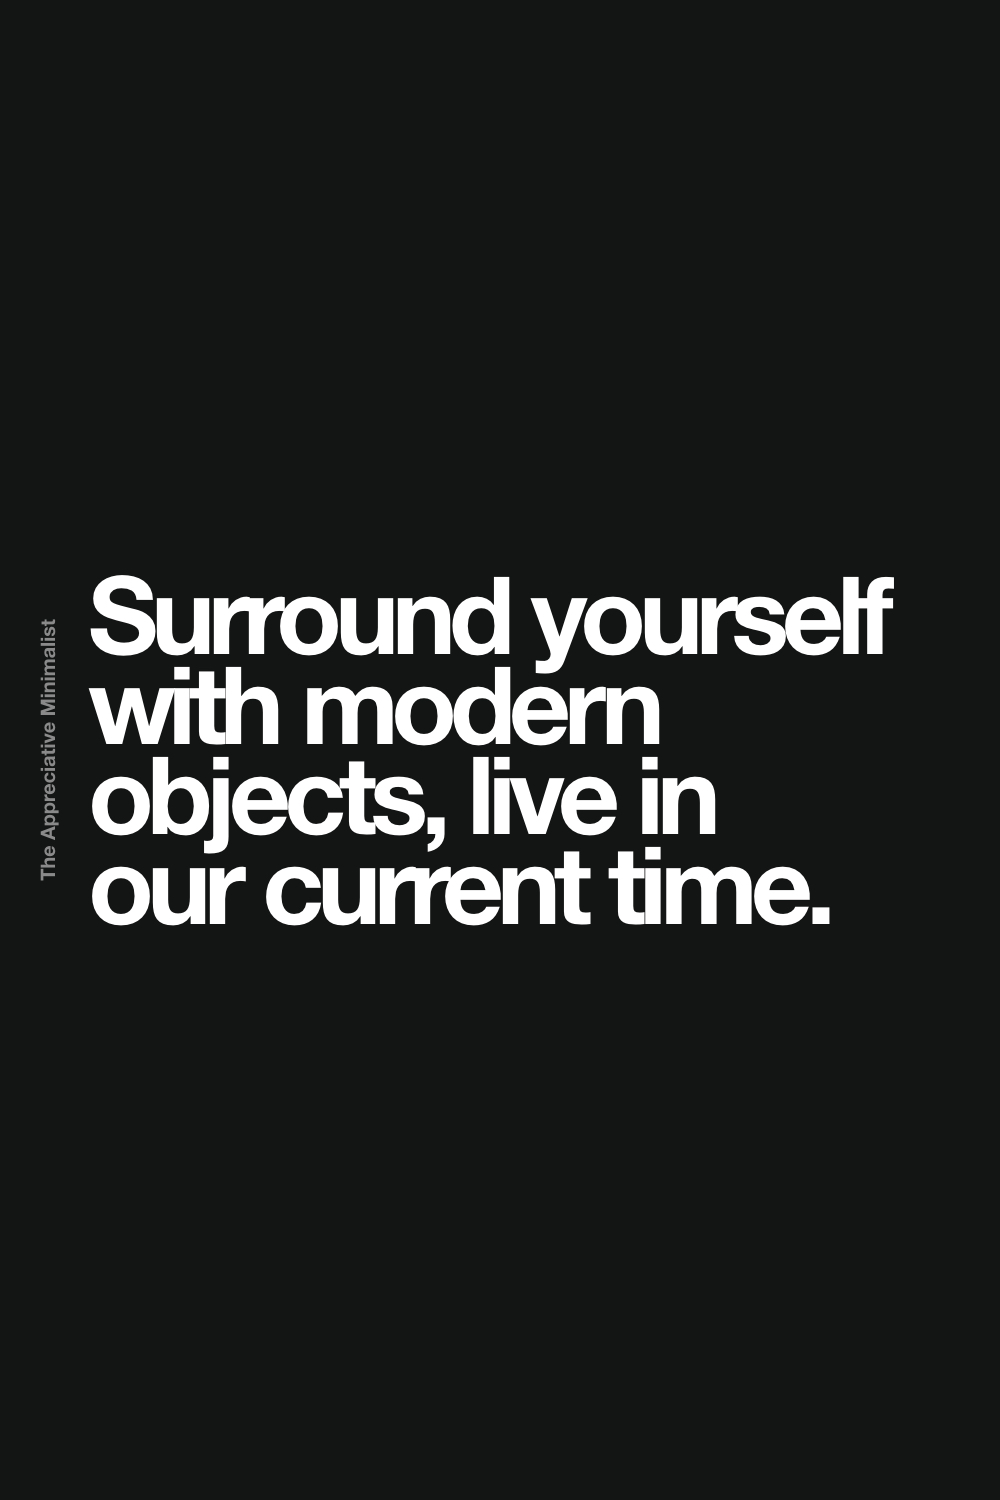 Surround yourself with modern objects, live in our current time.